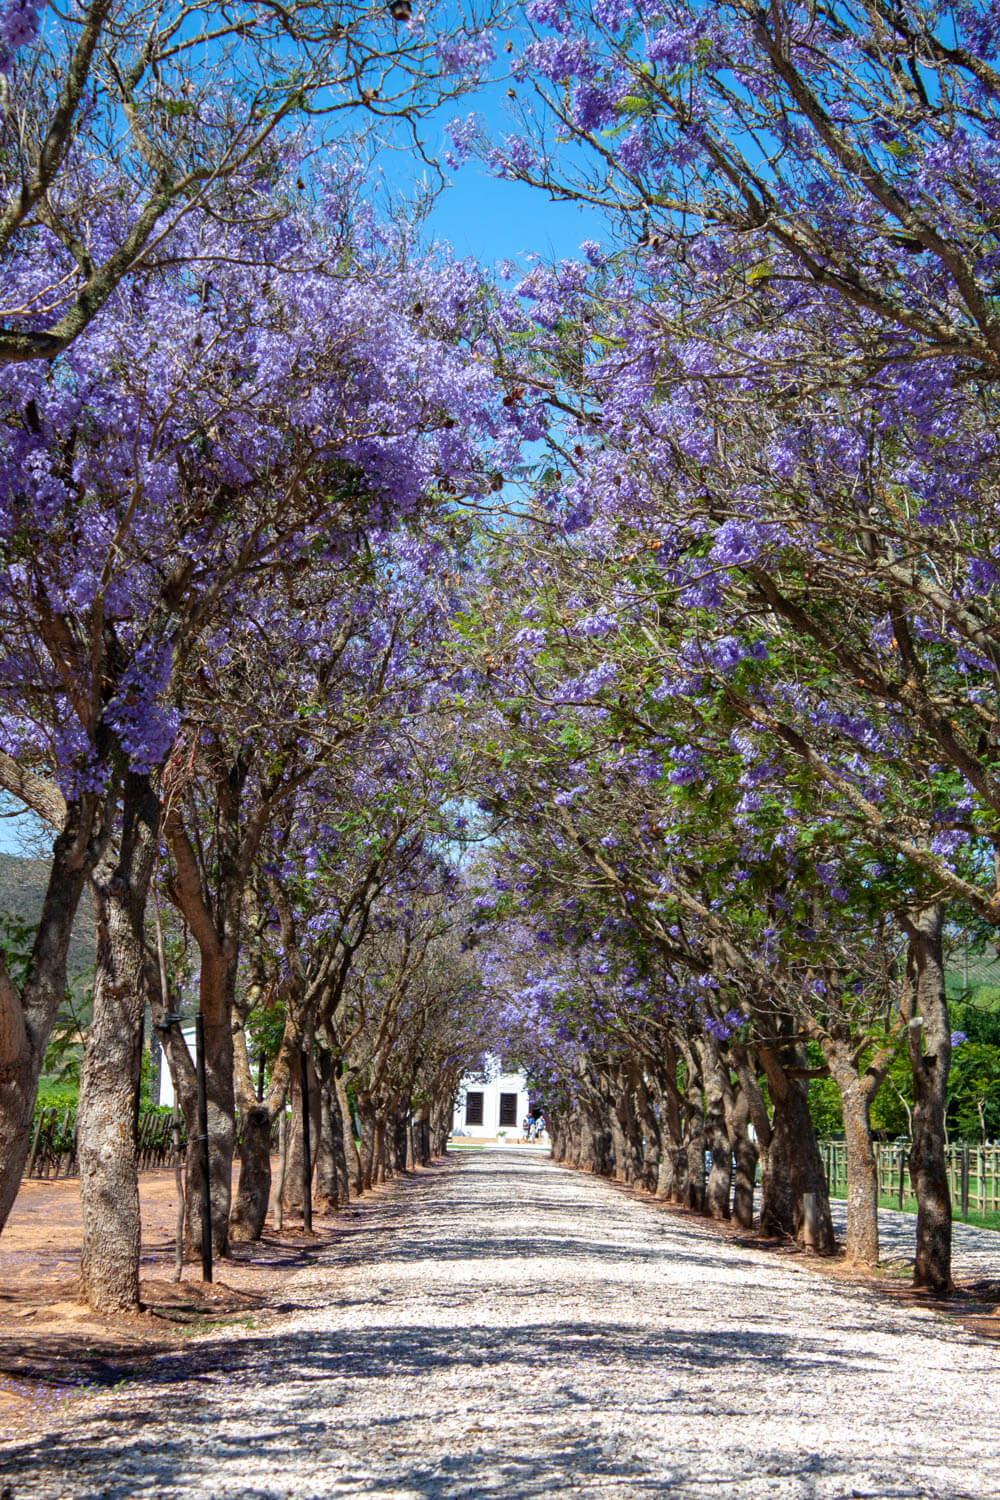 Lane of jacarandas down towards a winery